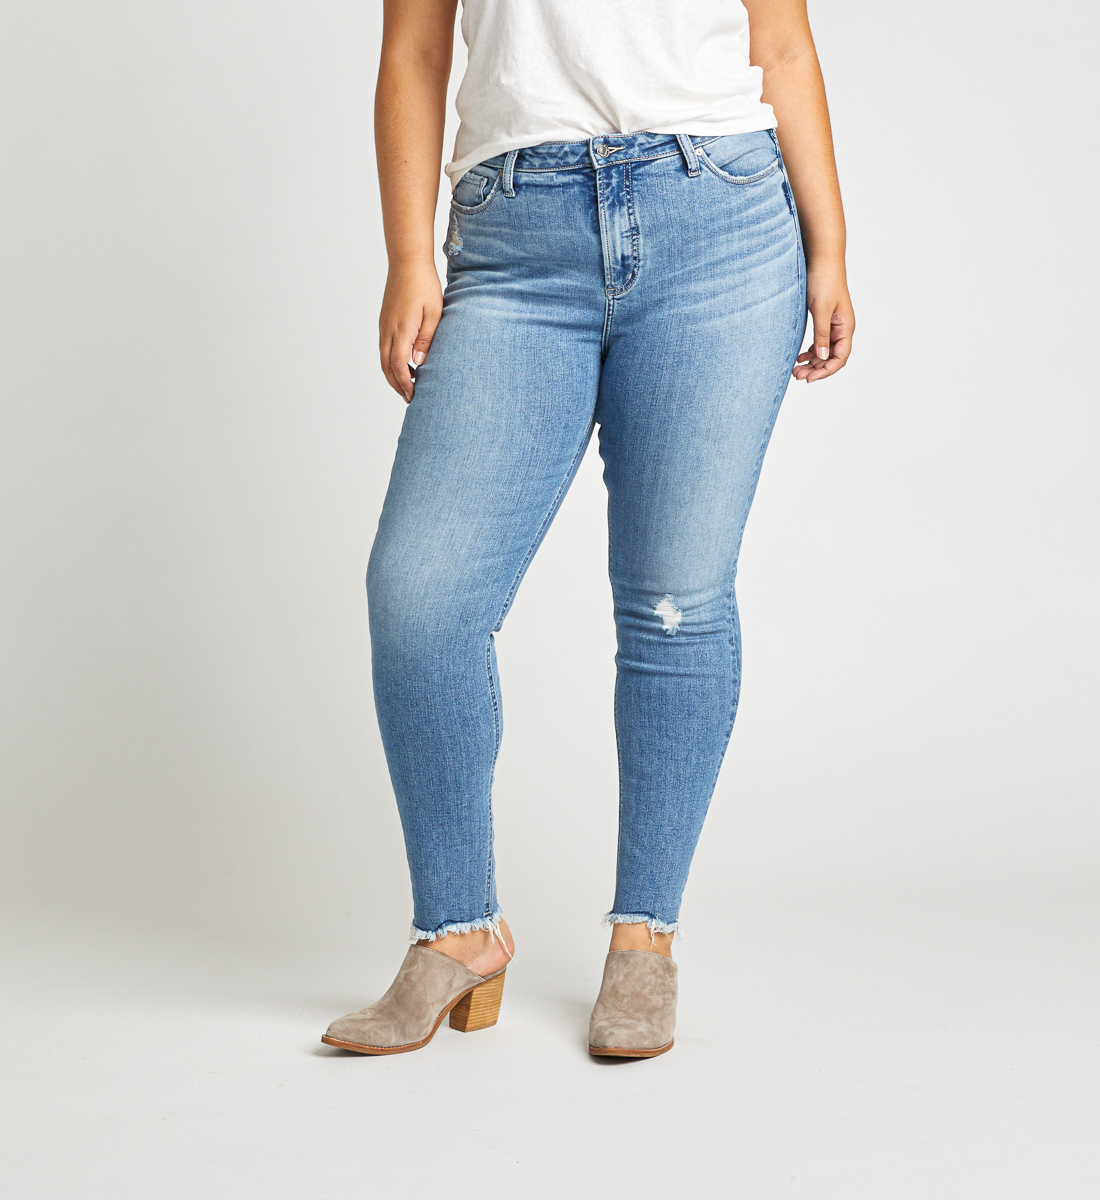 High Note High Rise Skinny Jeans Plus Size Front